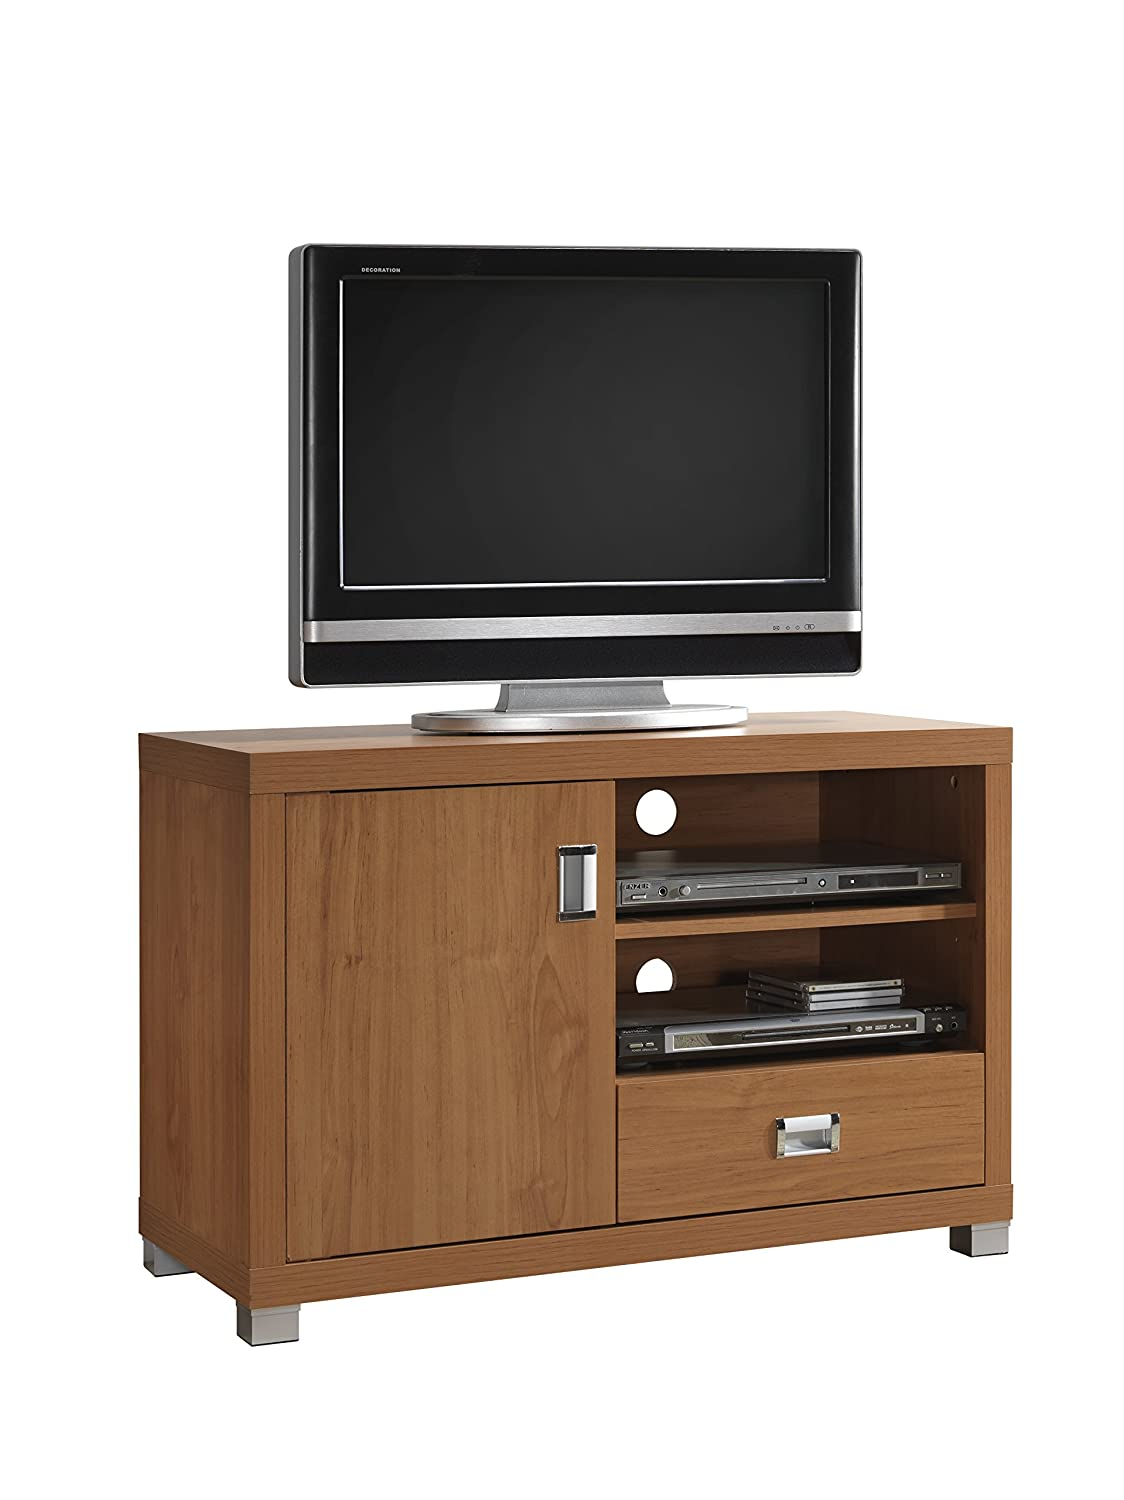 Amazon.com: TV Stand with Storage. Color: Maple: Kitchen & Dining